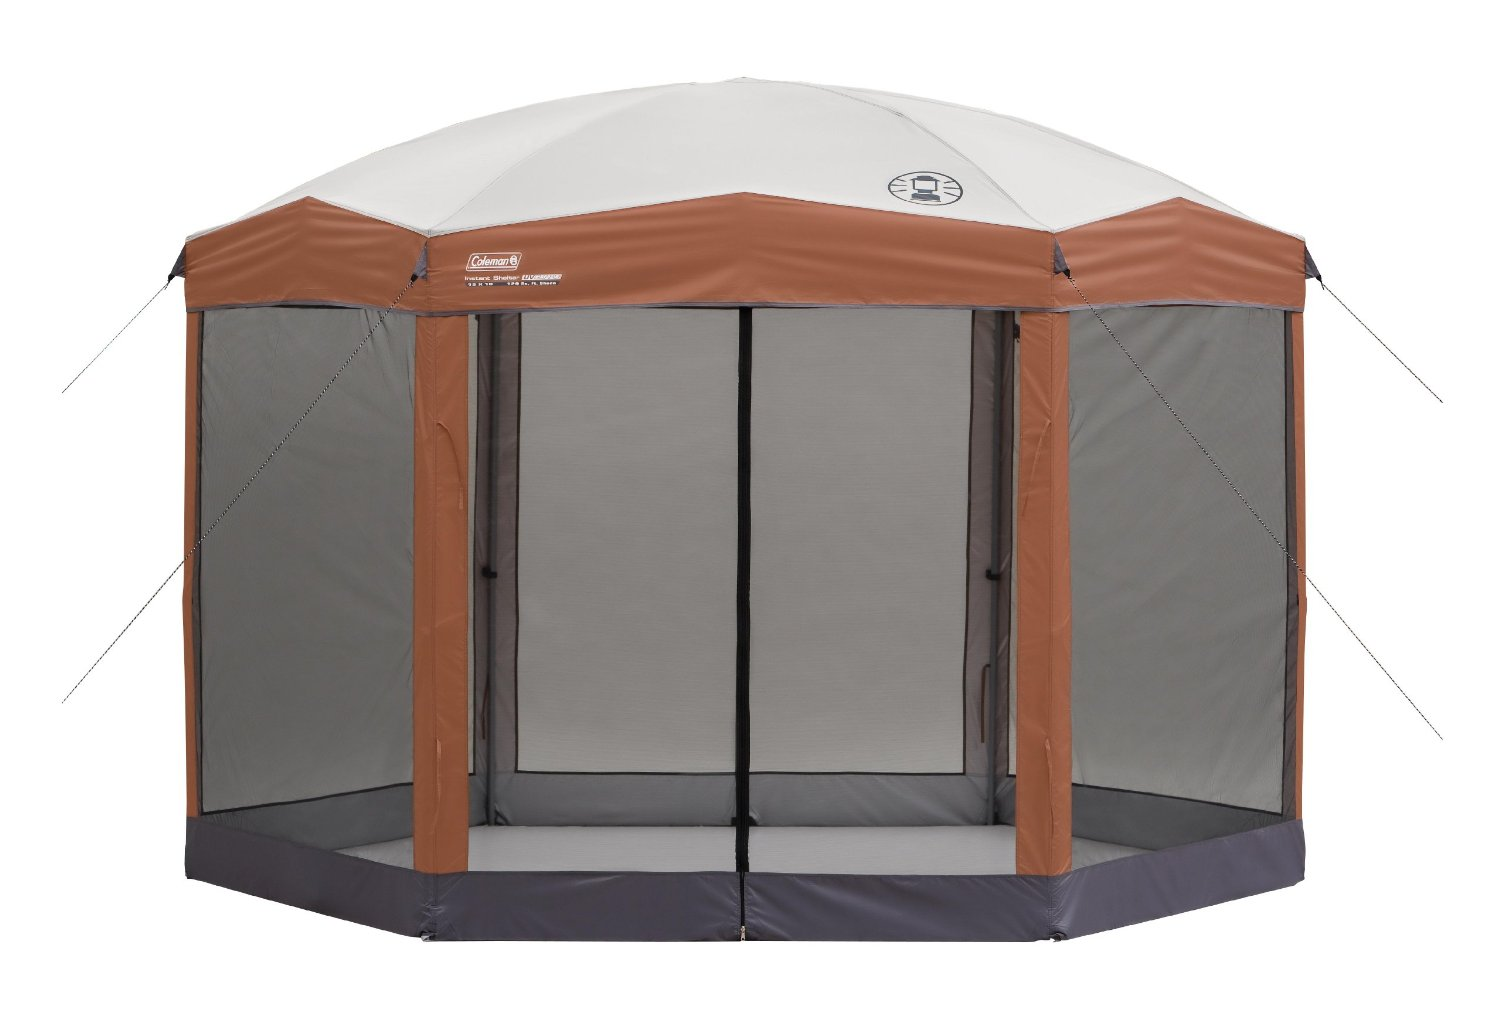 Backyard Canopy With Screens :  You Need To Know About Gazebos!  The Garden and Patio Home Guide